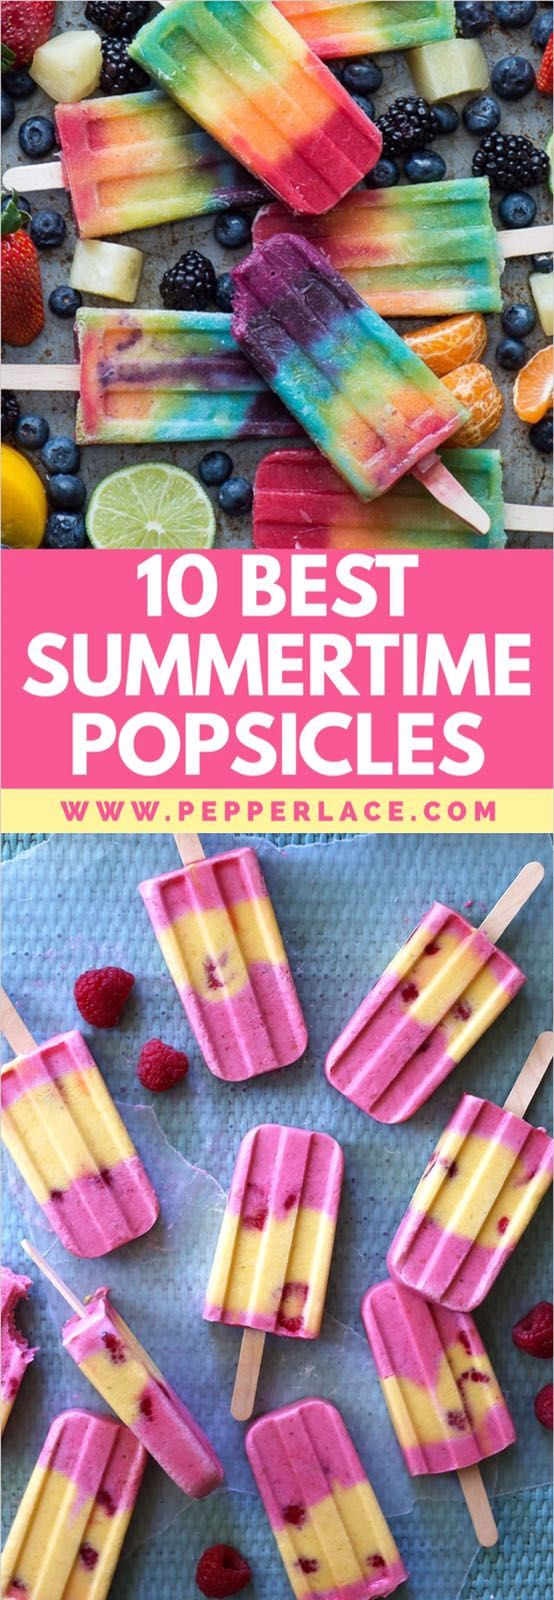 10 Best summertime Popsicles To Make at Home – PepperLace